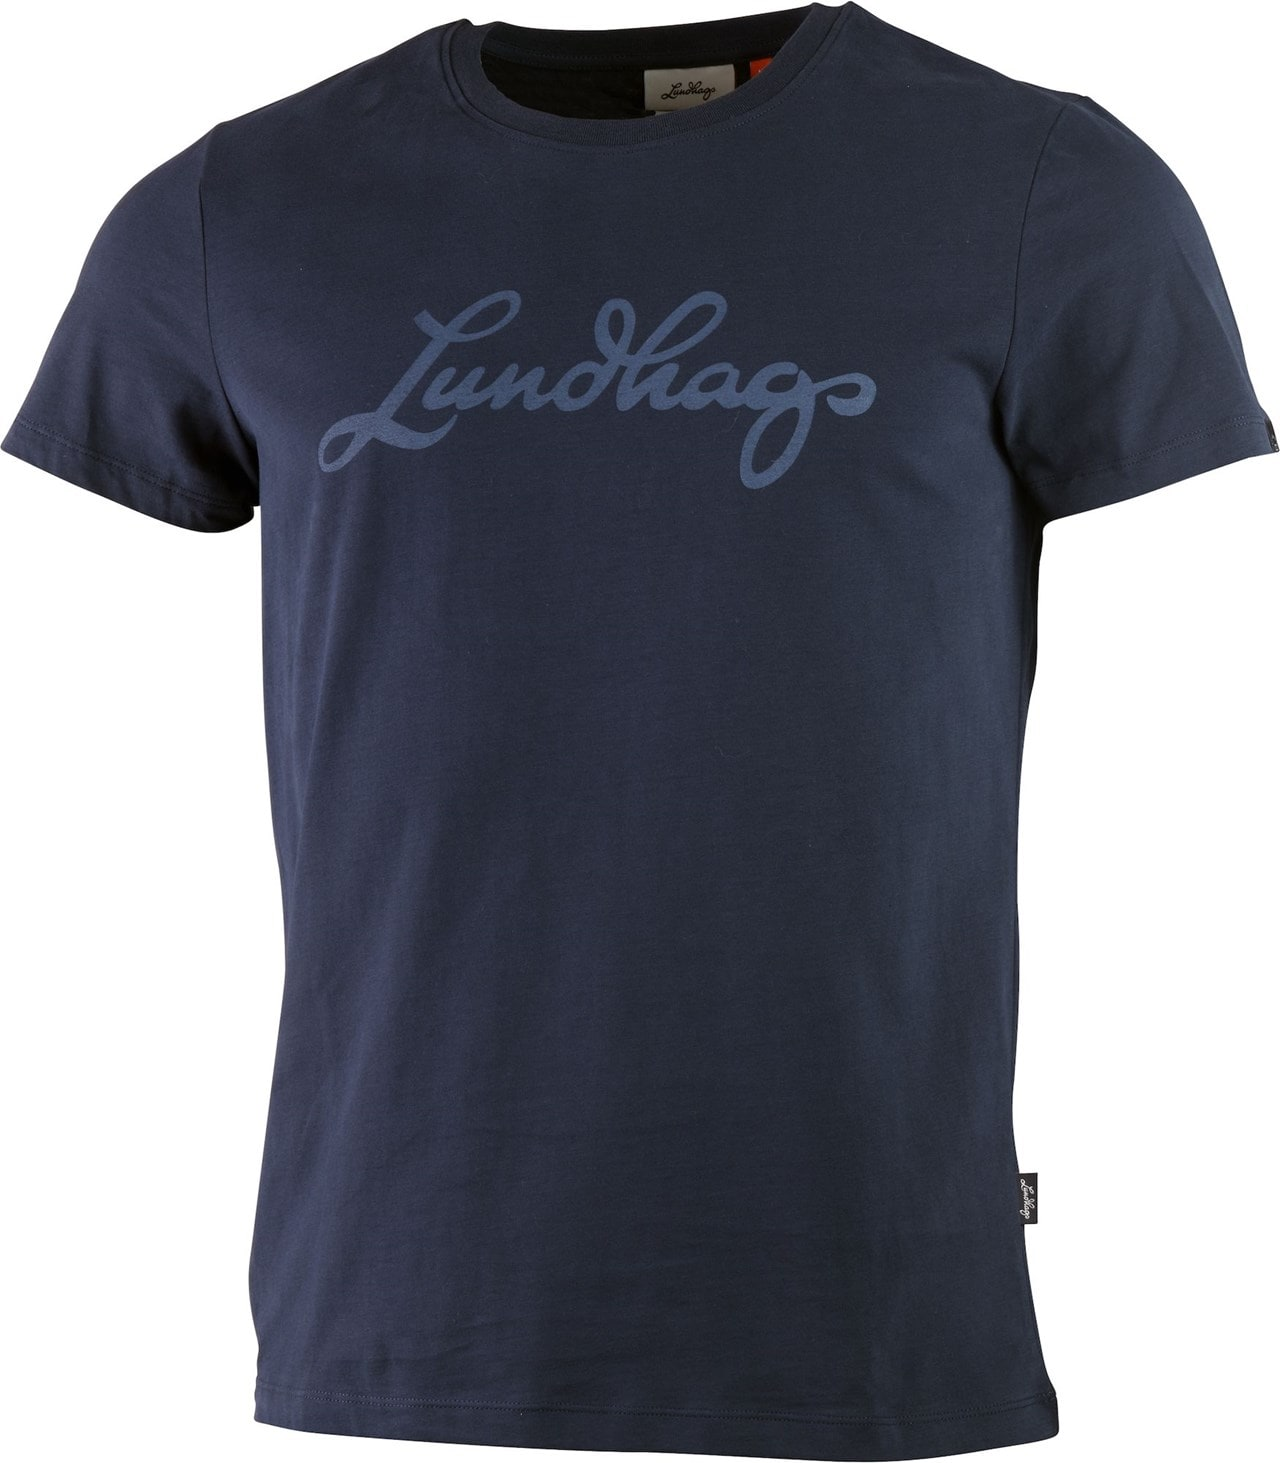 Lundhags Tee M's